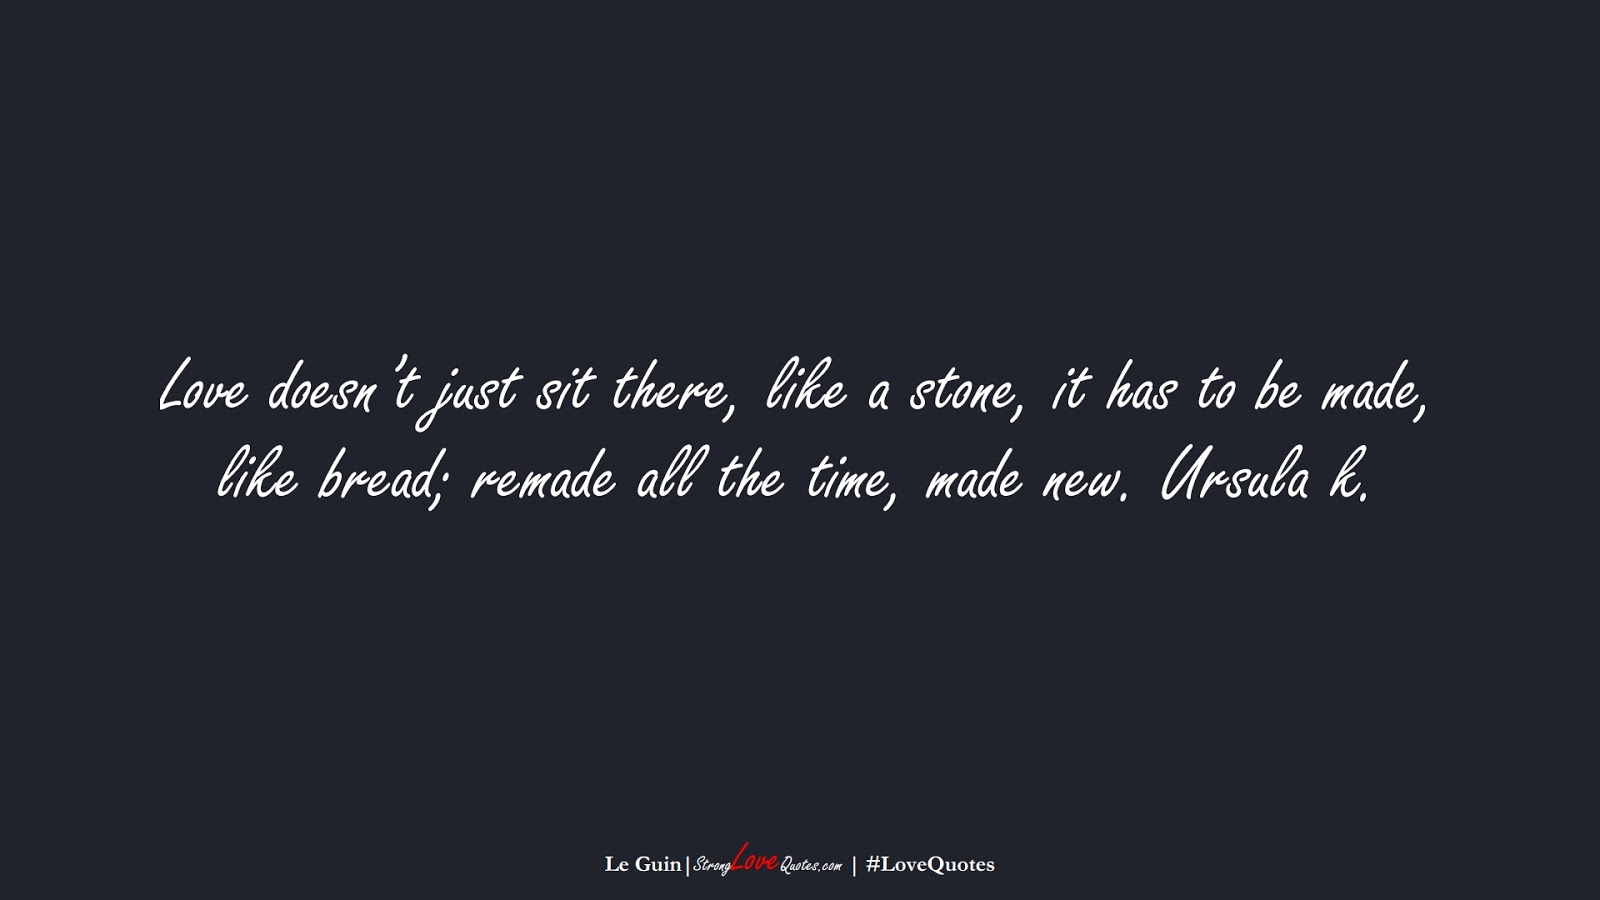 Love doesn't just sit there, like a stone, it has to be made, like bread; remade all the time, made new. Ursula k. (Le Guin);  #LoveQuotes